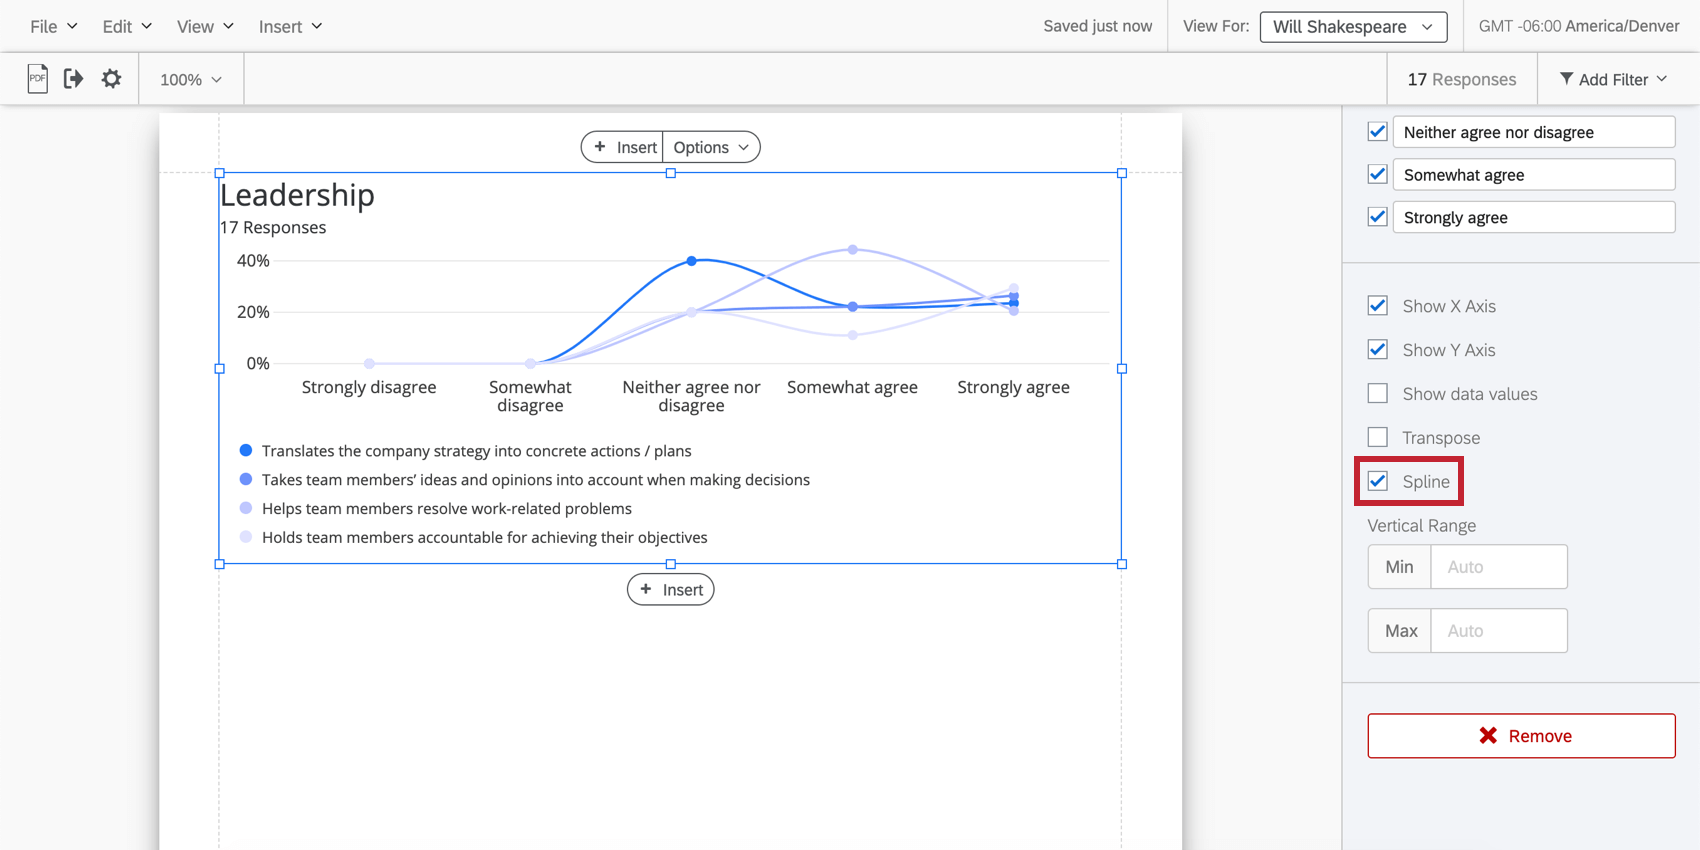 spline is selected and the line chart has rounded corners